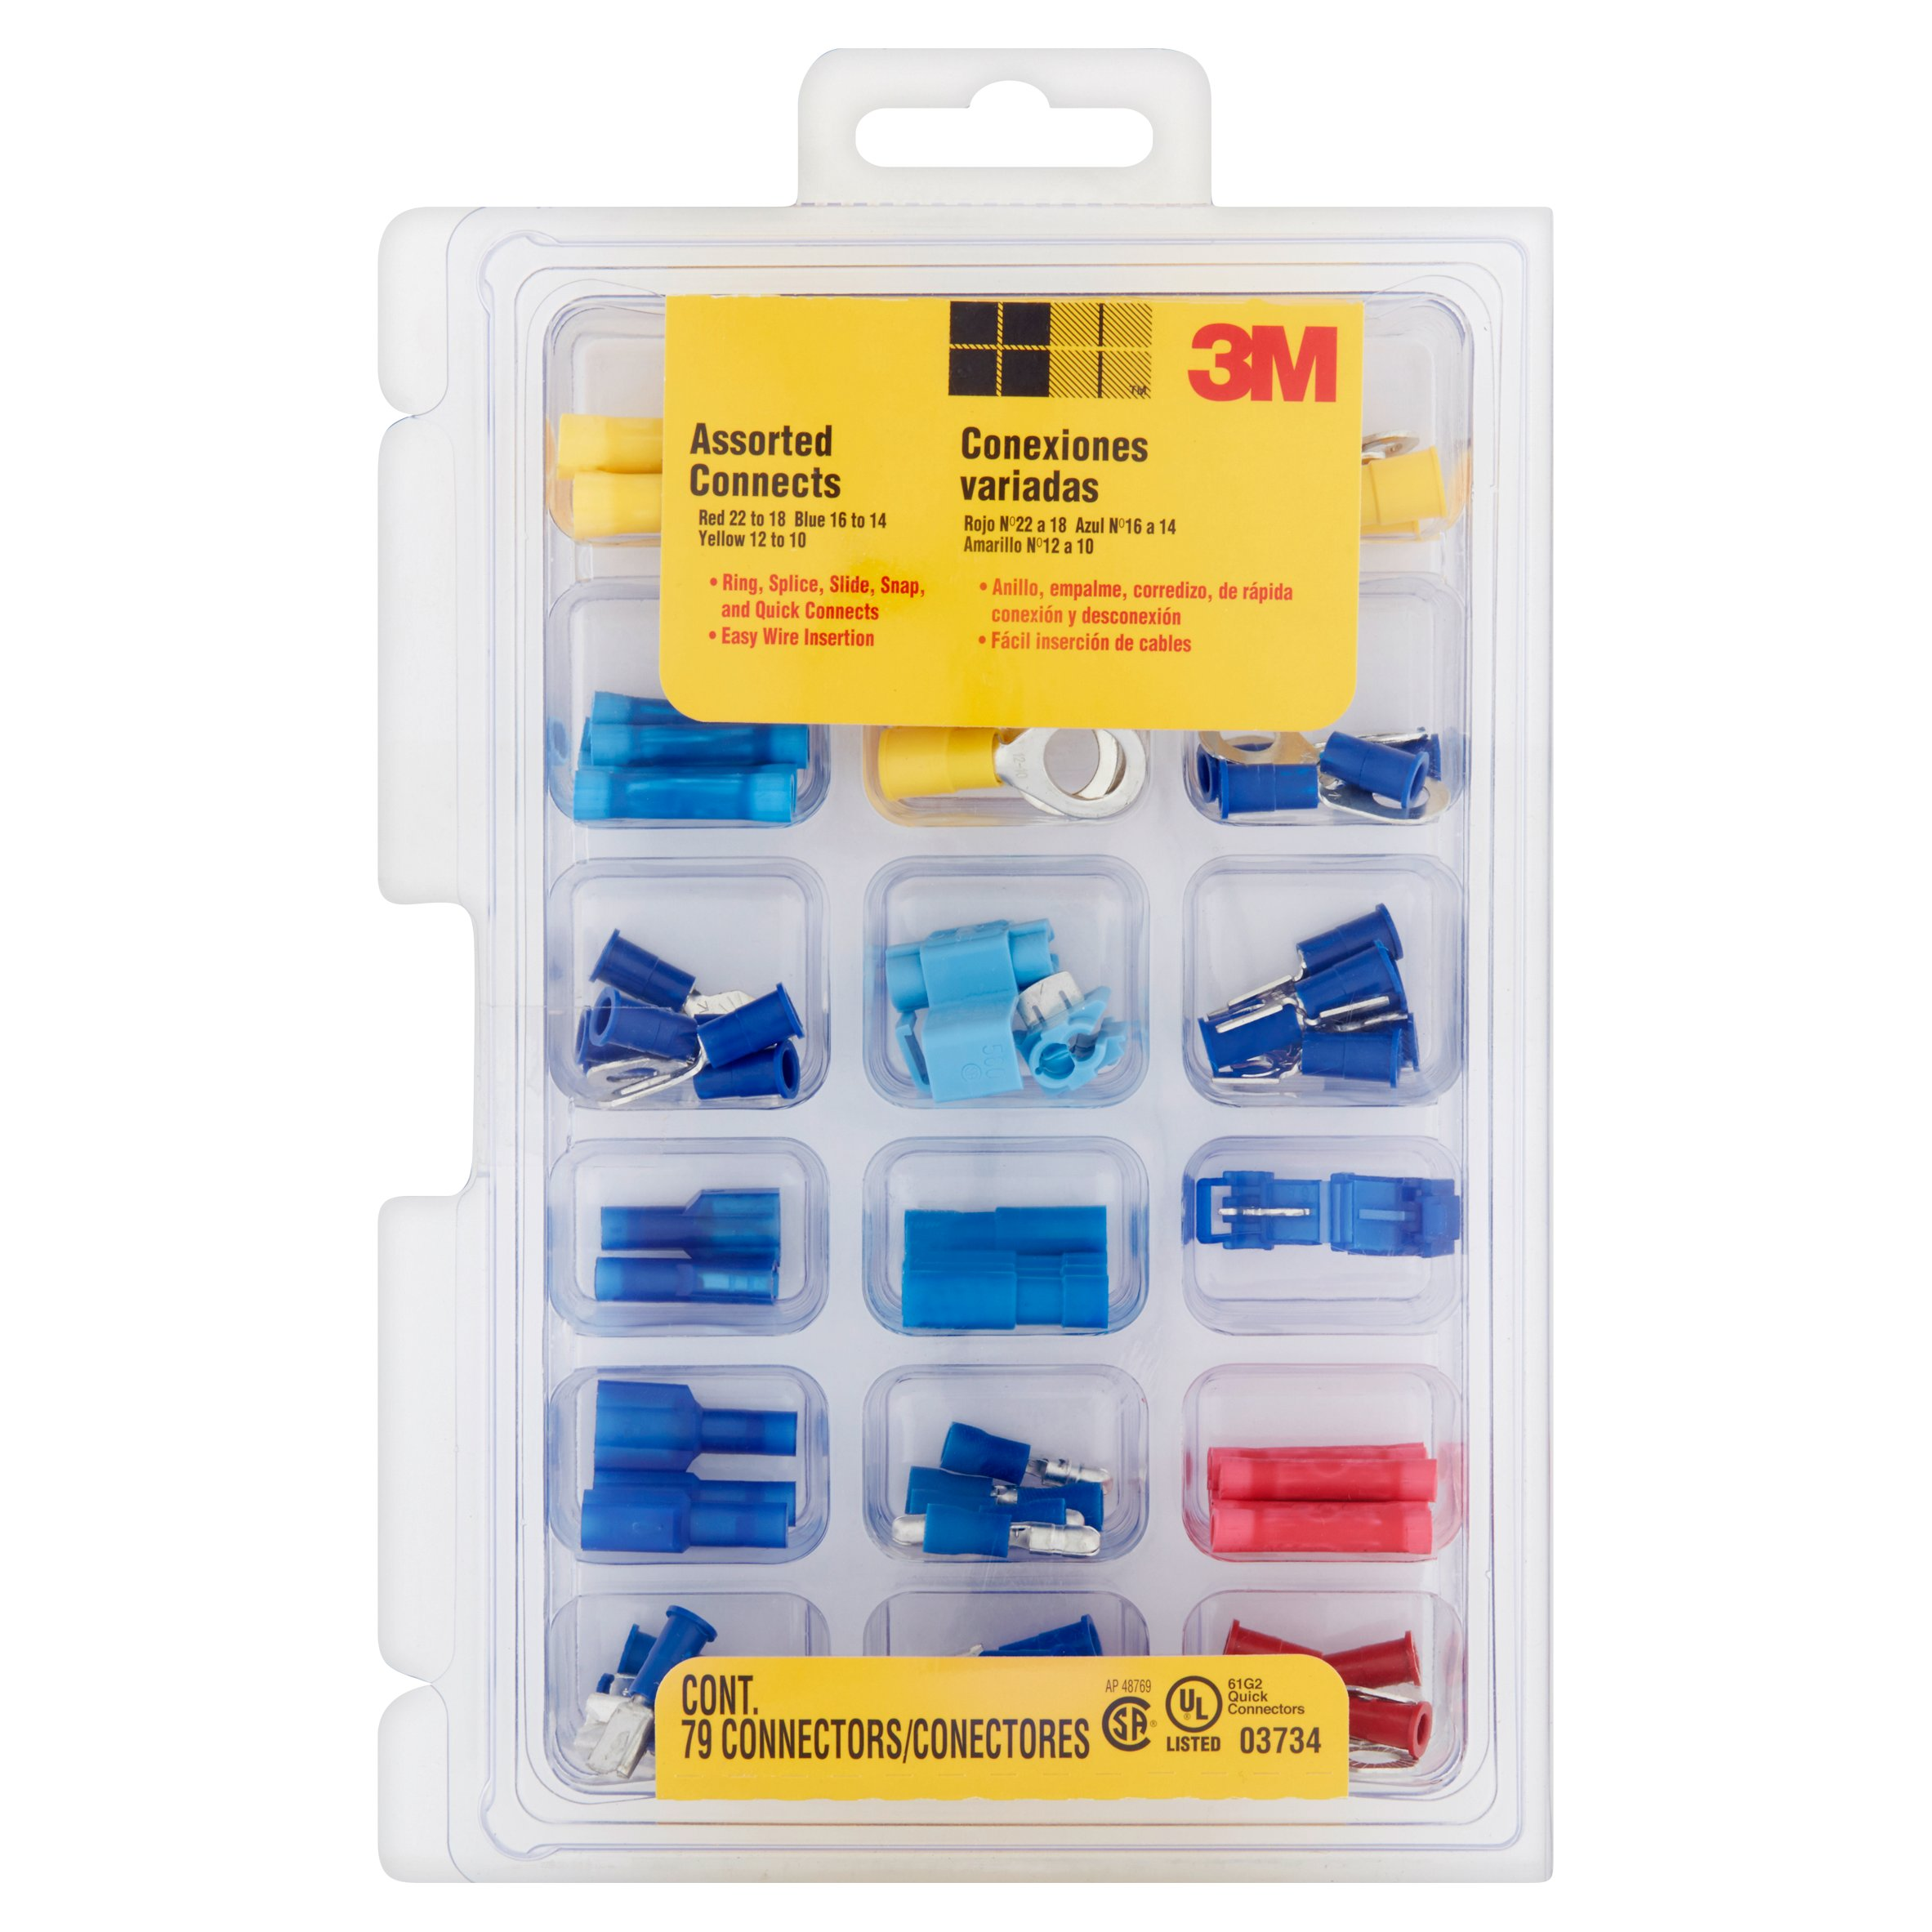 3M 61G2 Quick Connectors, 79 count